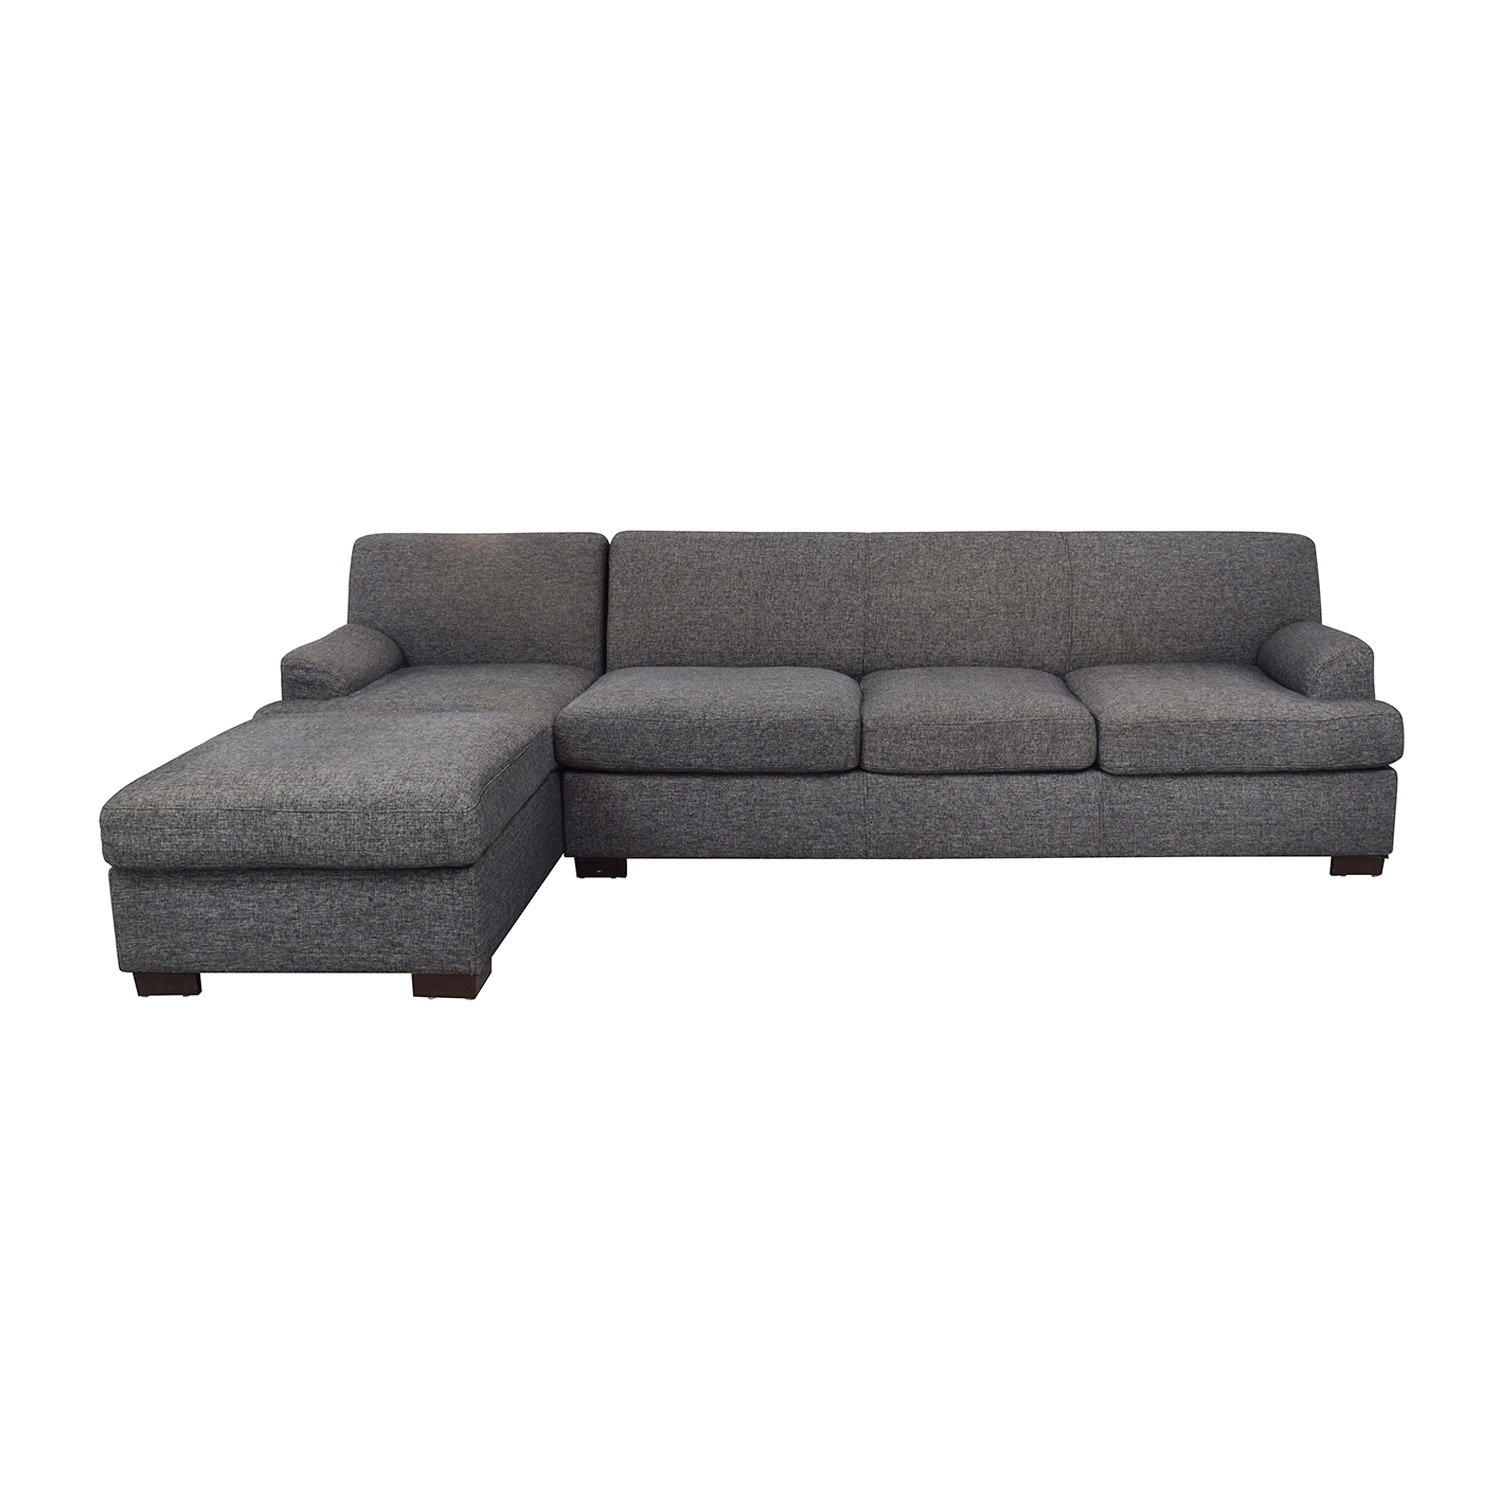 Grey Chaise Sectional Sofa second hand